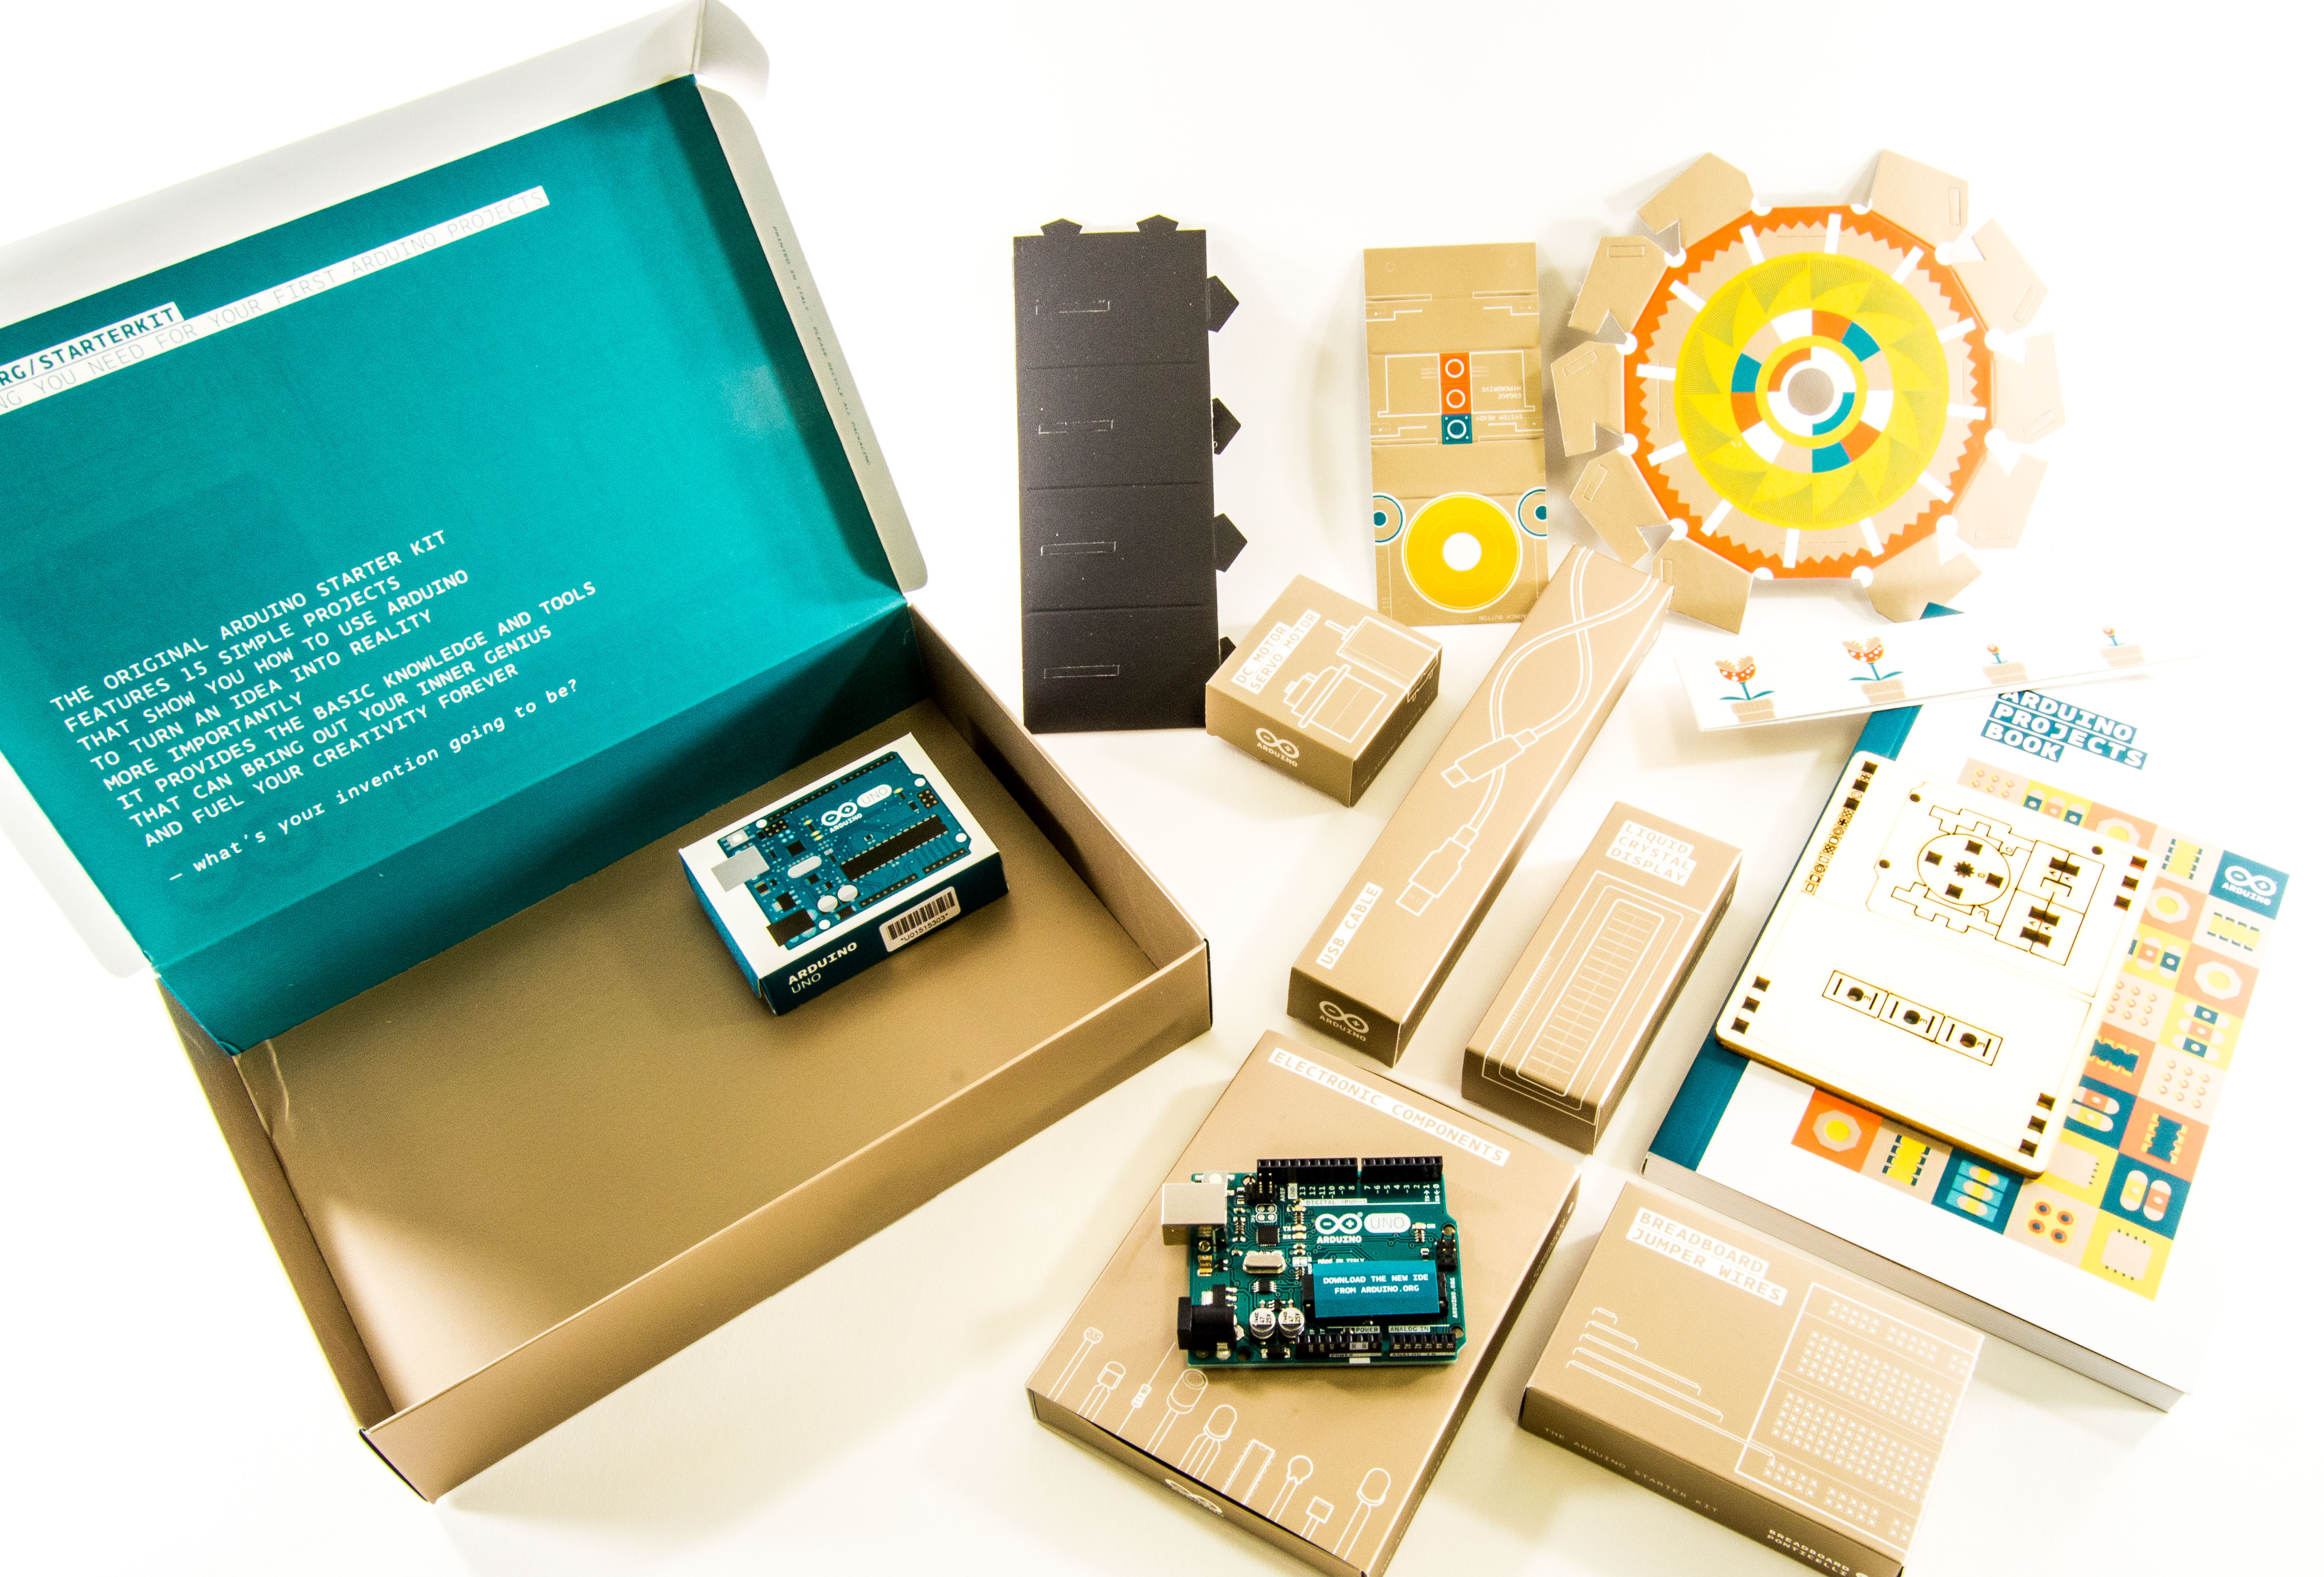 Osoyoo 2017 Super Starter Kit With UNO R3 Board For Arduino DIY Learning Projects Robot